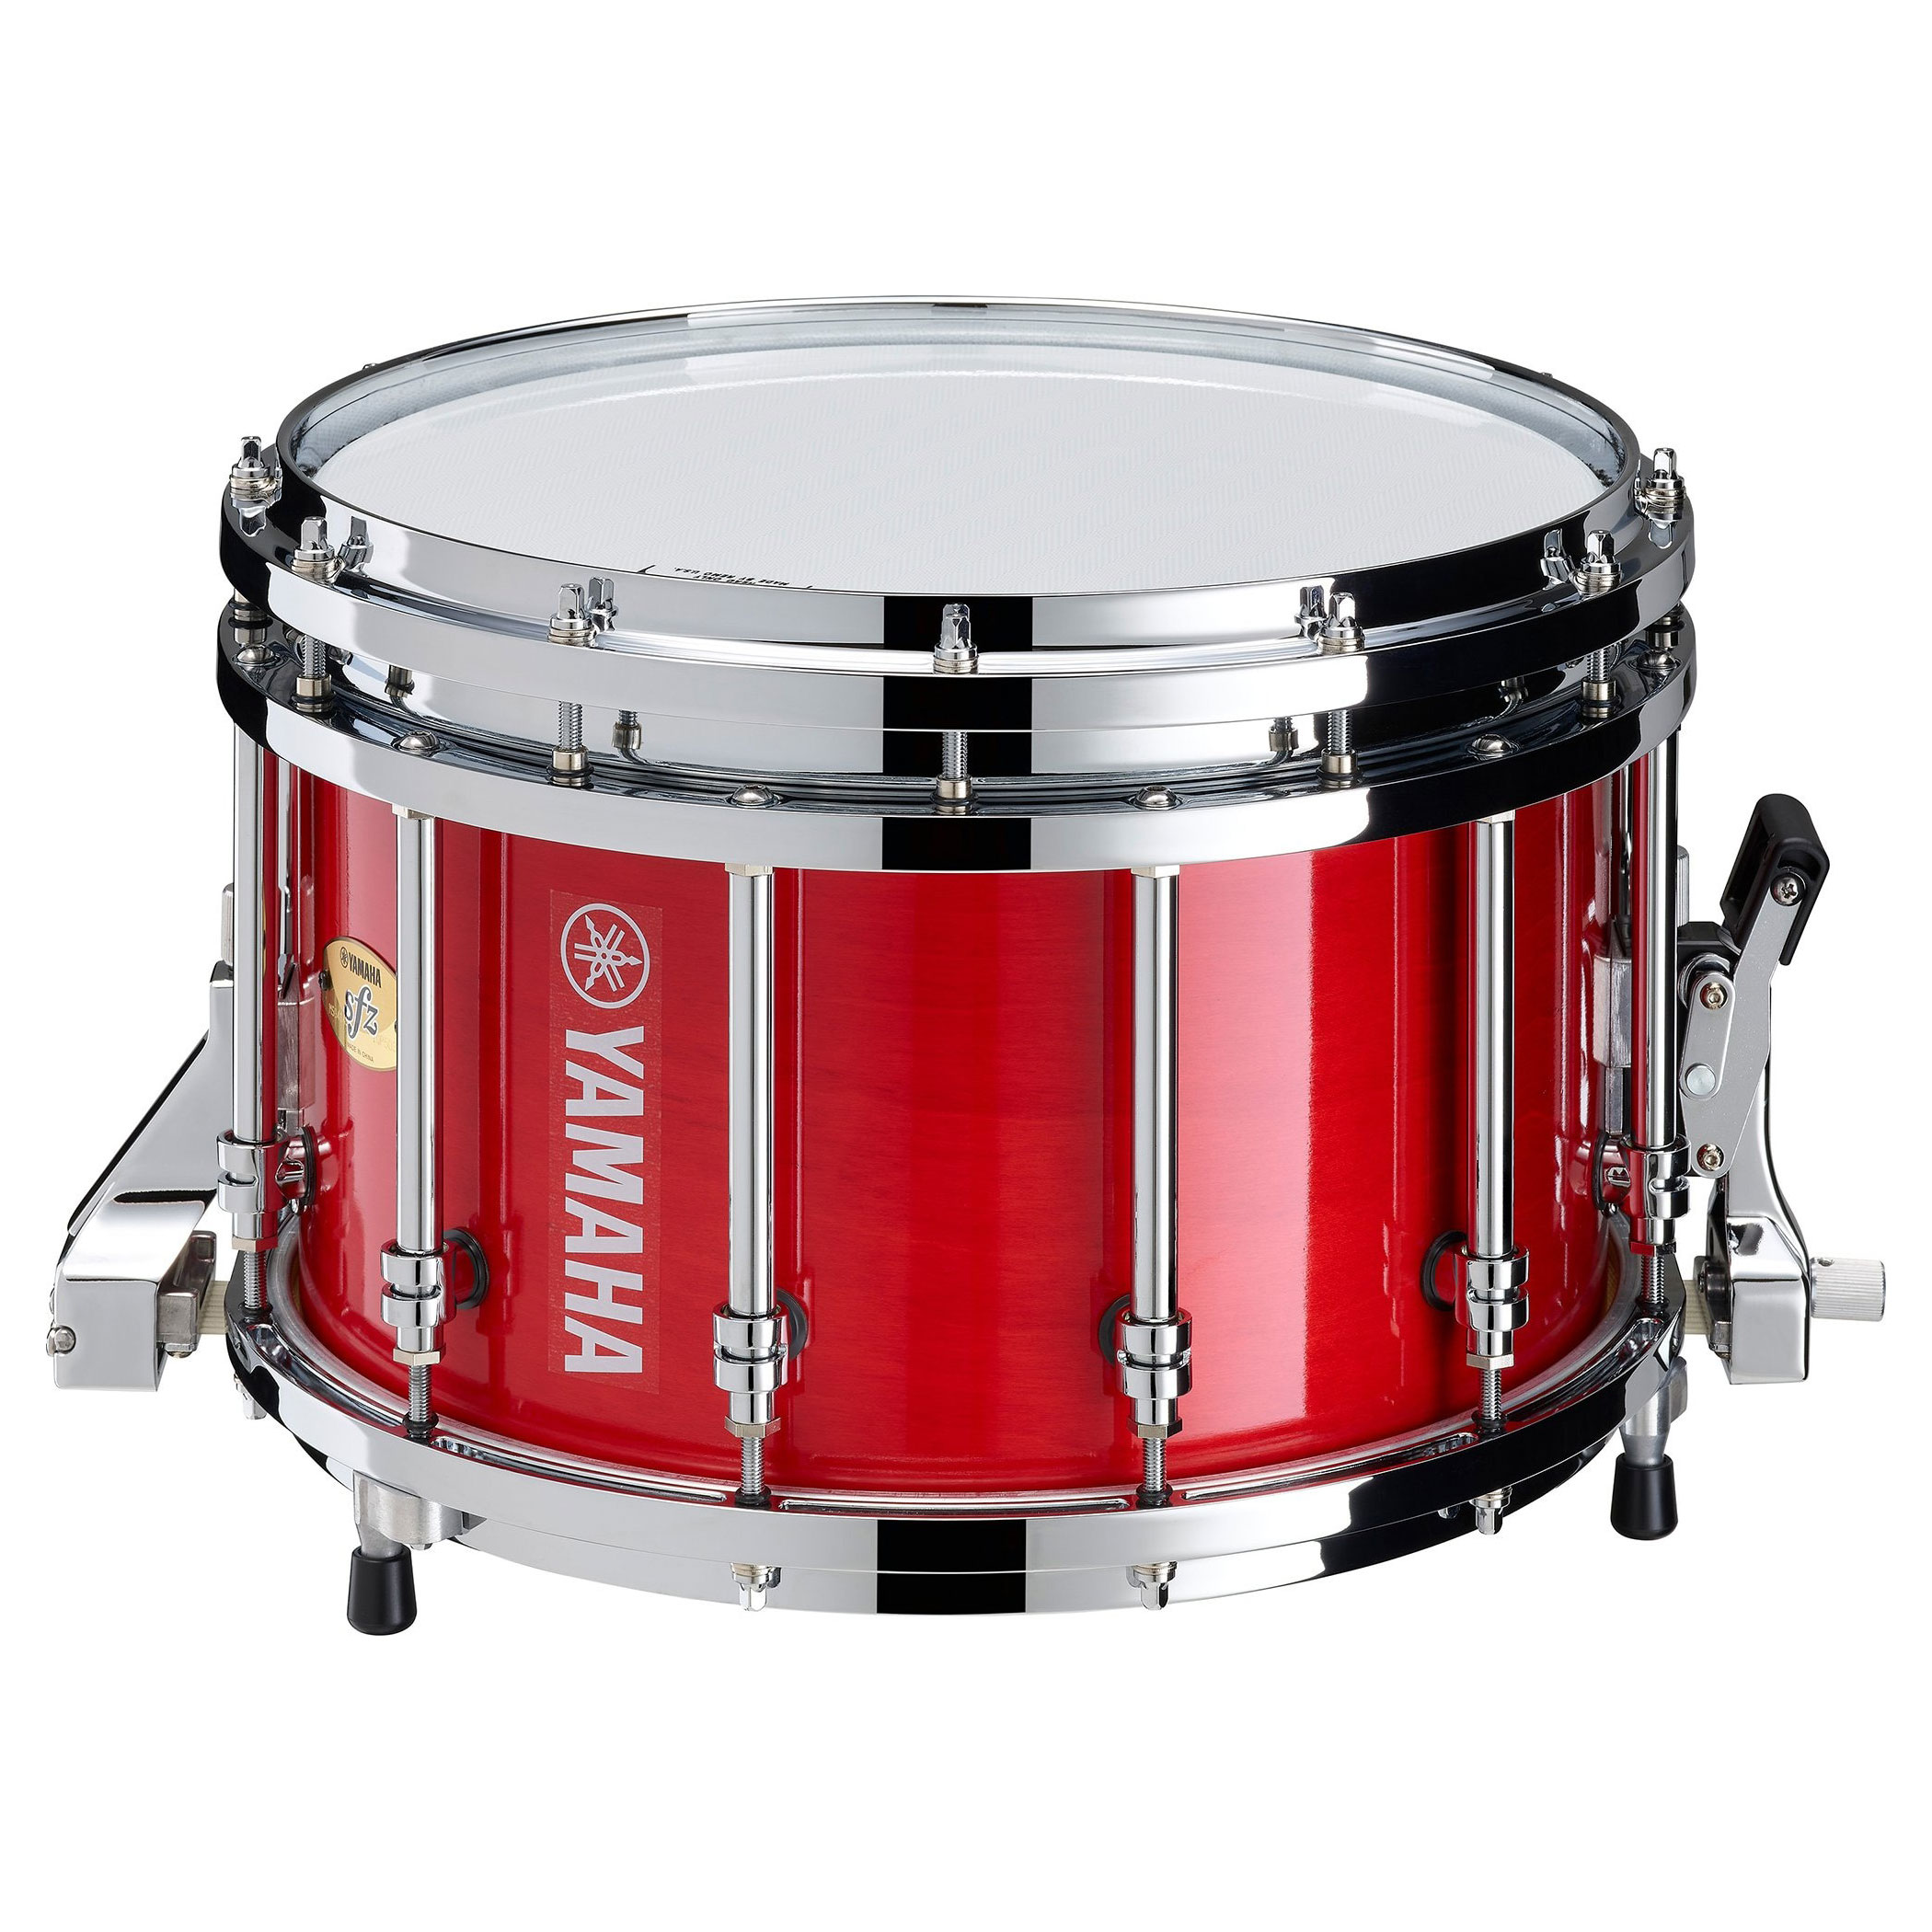 """Yamaha 14"""" x 9"""" 9400 Series SFZ Marching Snare Drum with Chrome Hardware"""